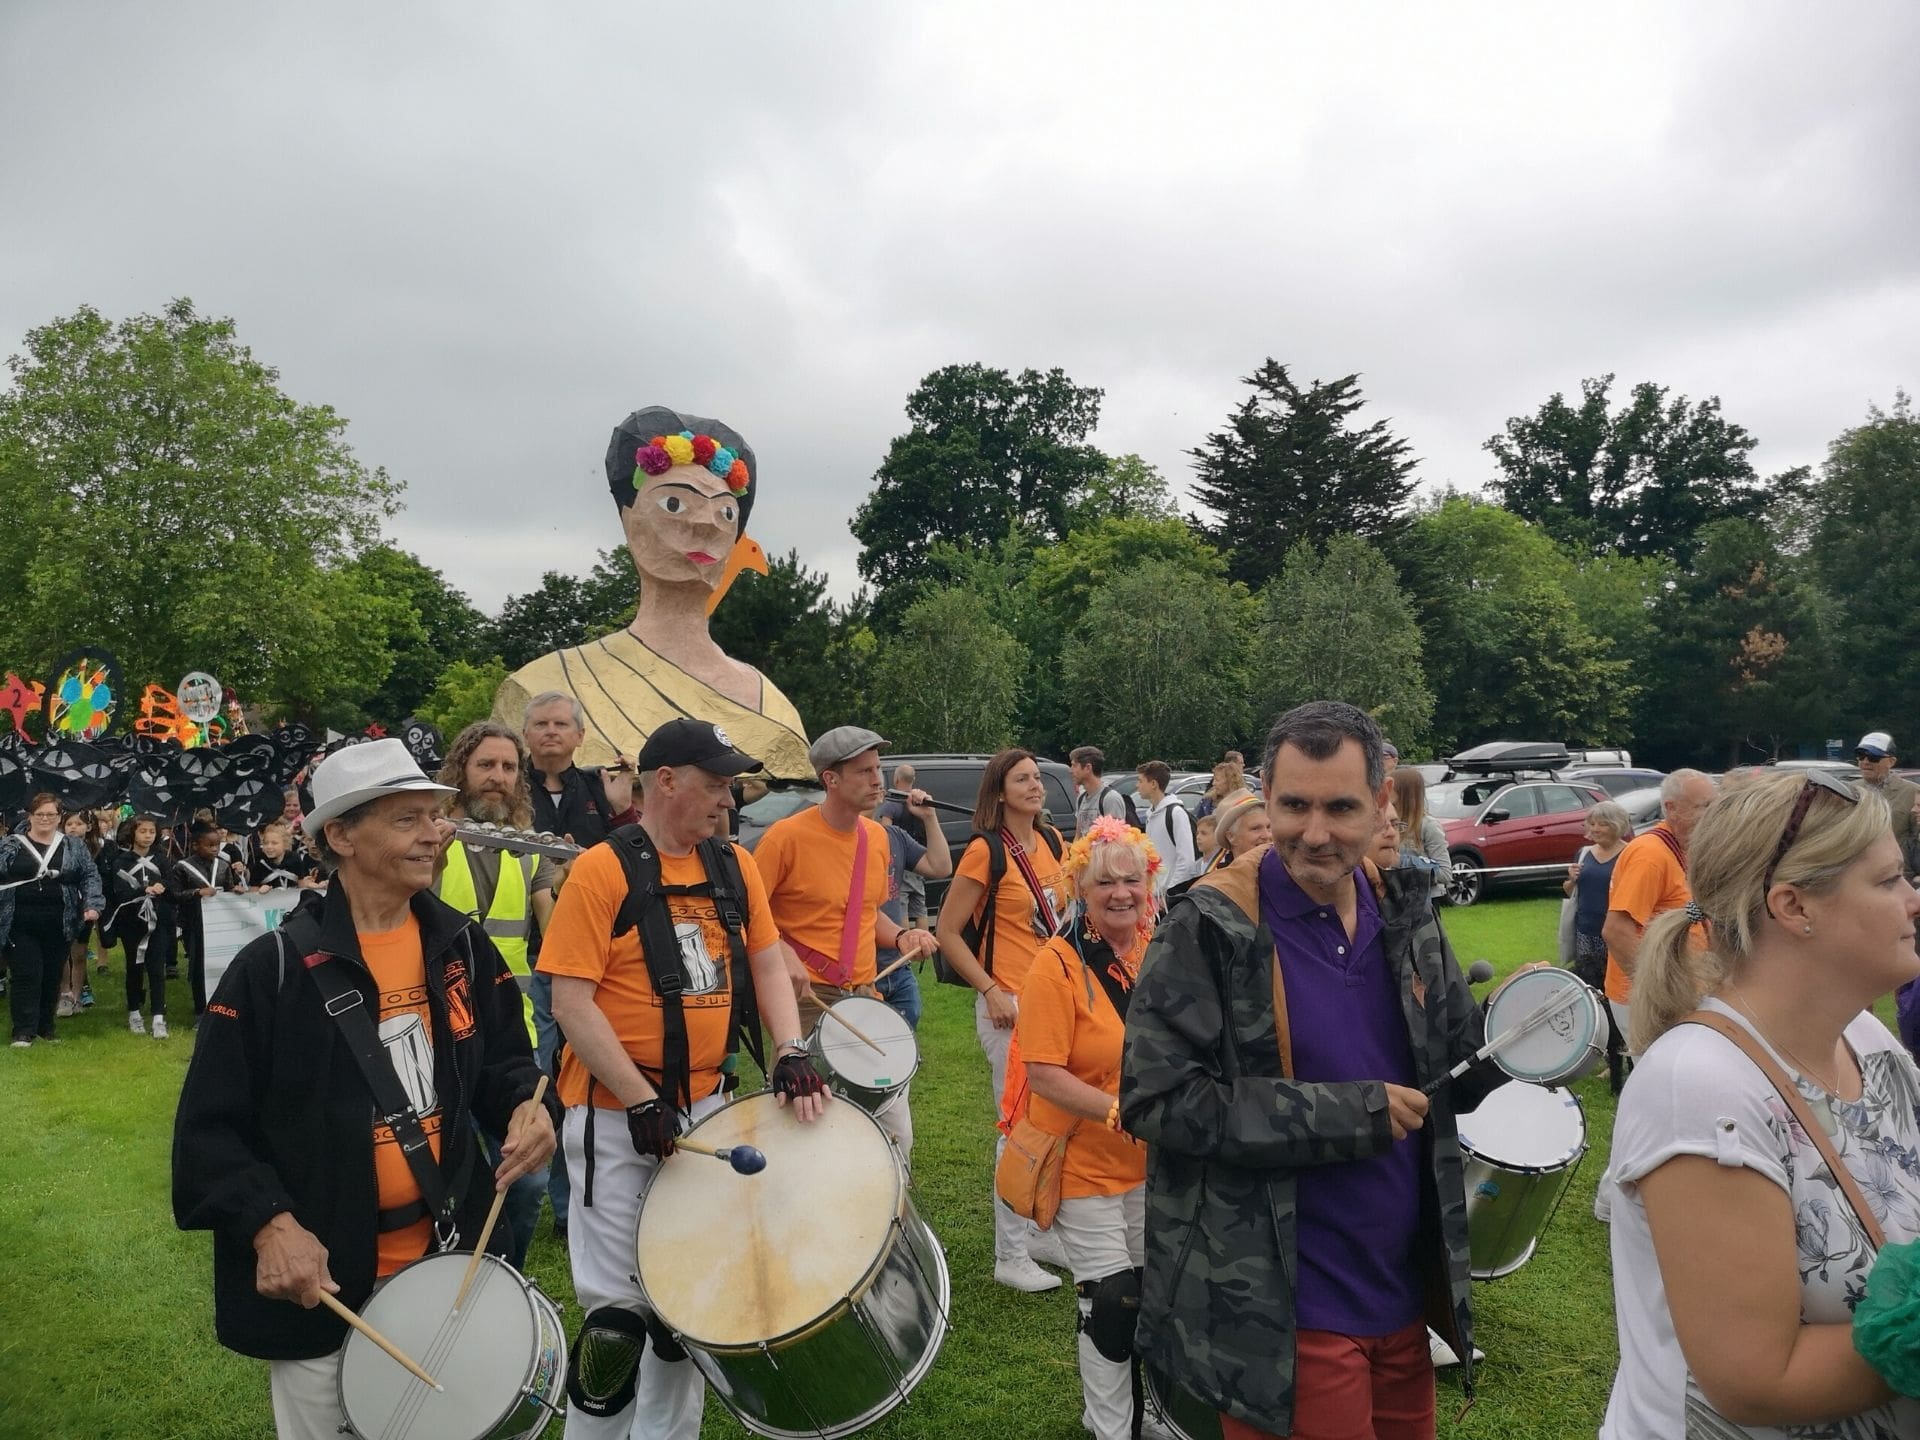 A parade of drummers in Horsham Park